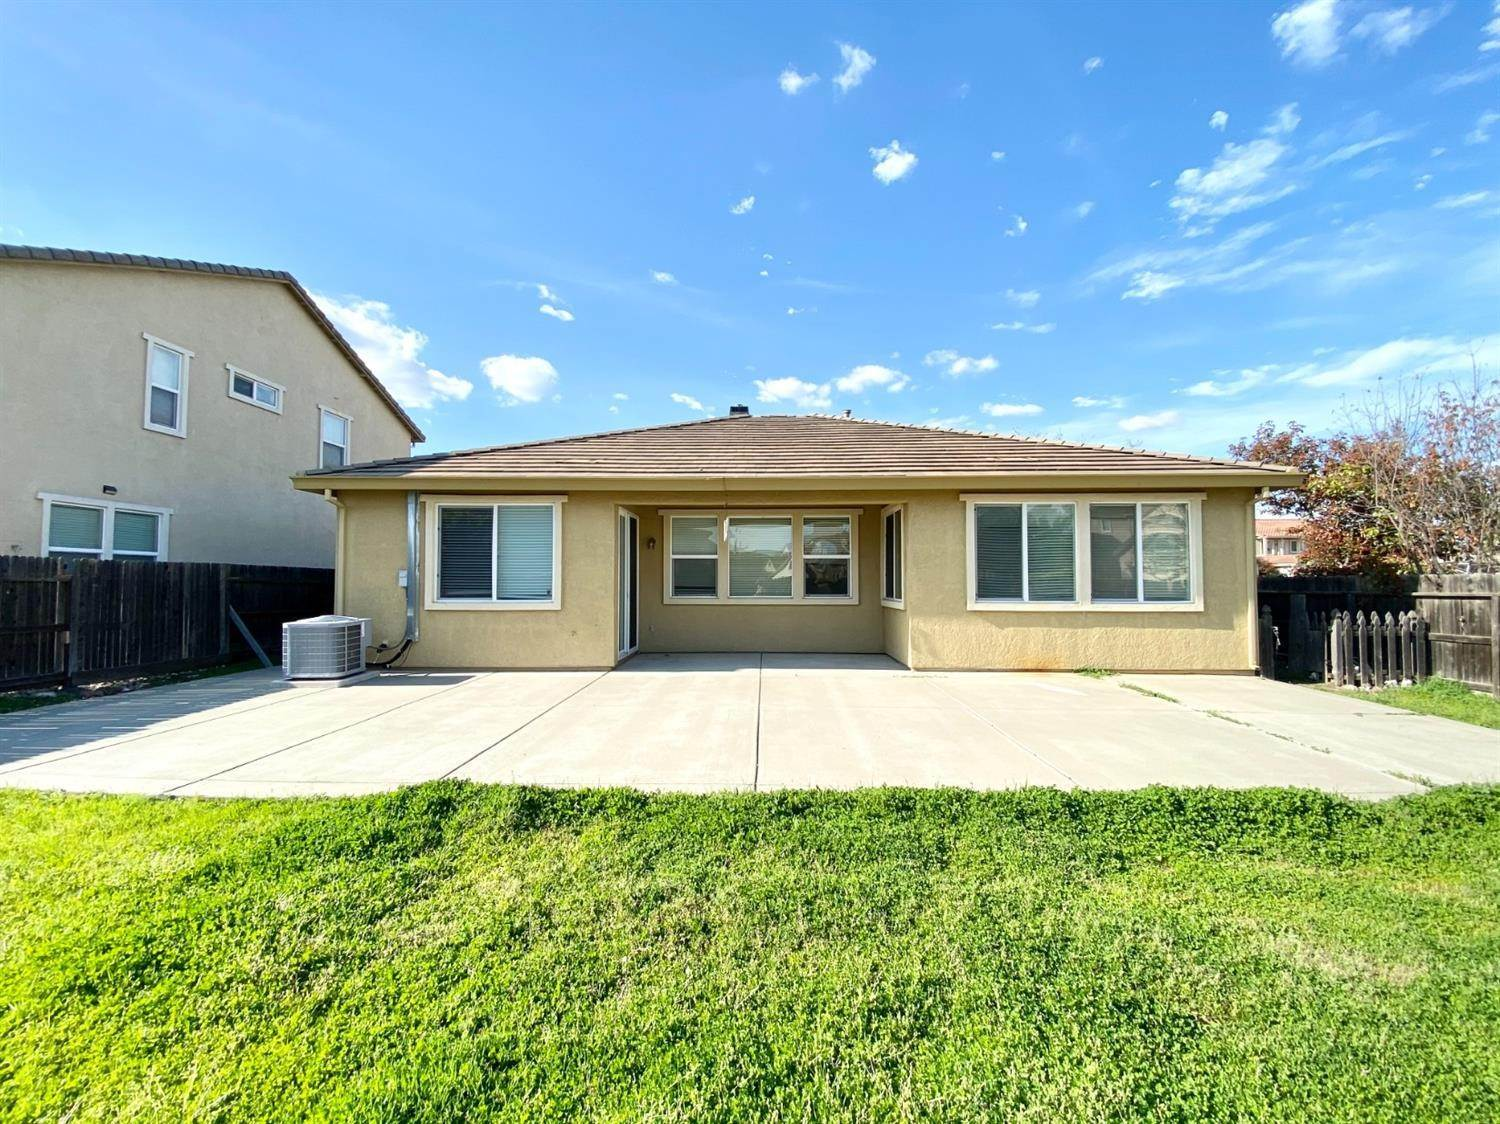 29. Single Family Homes for Active at 8362 Lollipop Lane Elk Grove, California 95624 United States